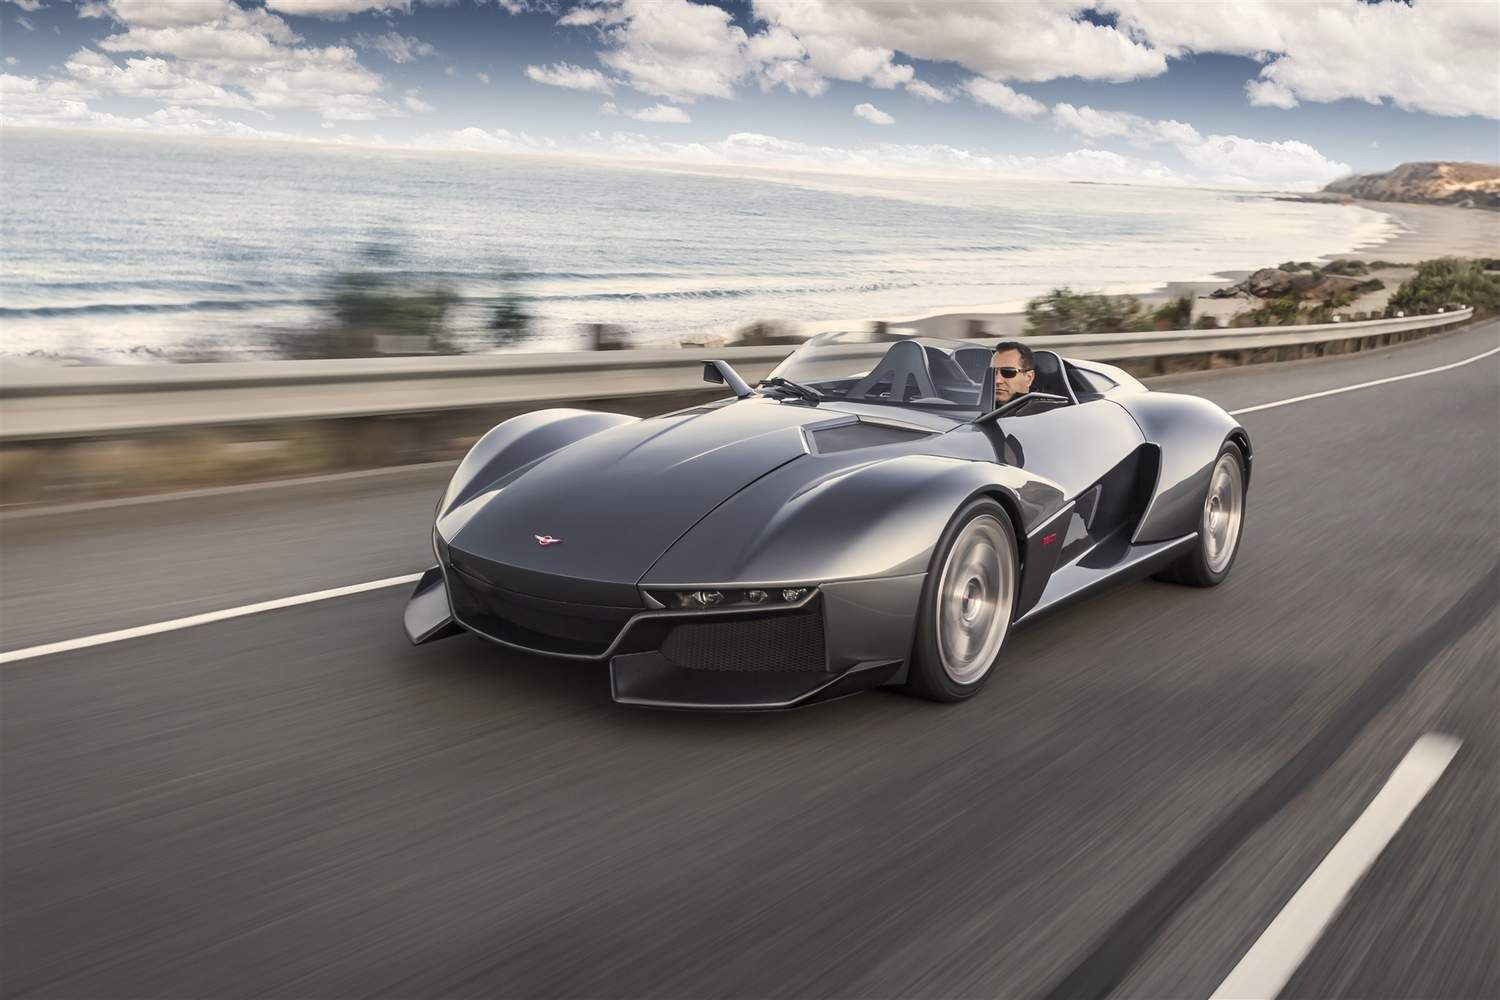 This Is Your New 500 Hp Carbon Fiber All American Supercar Superdeportivos Coches Conceptuales Autos